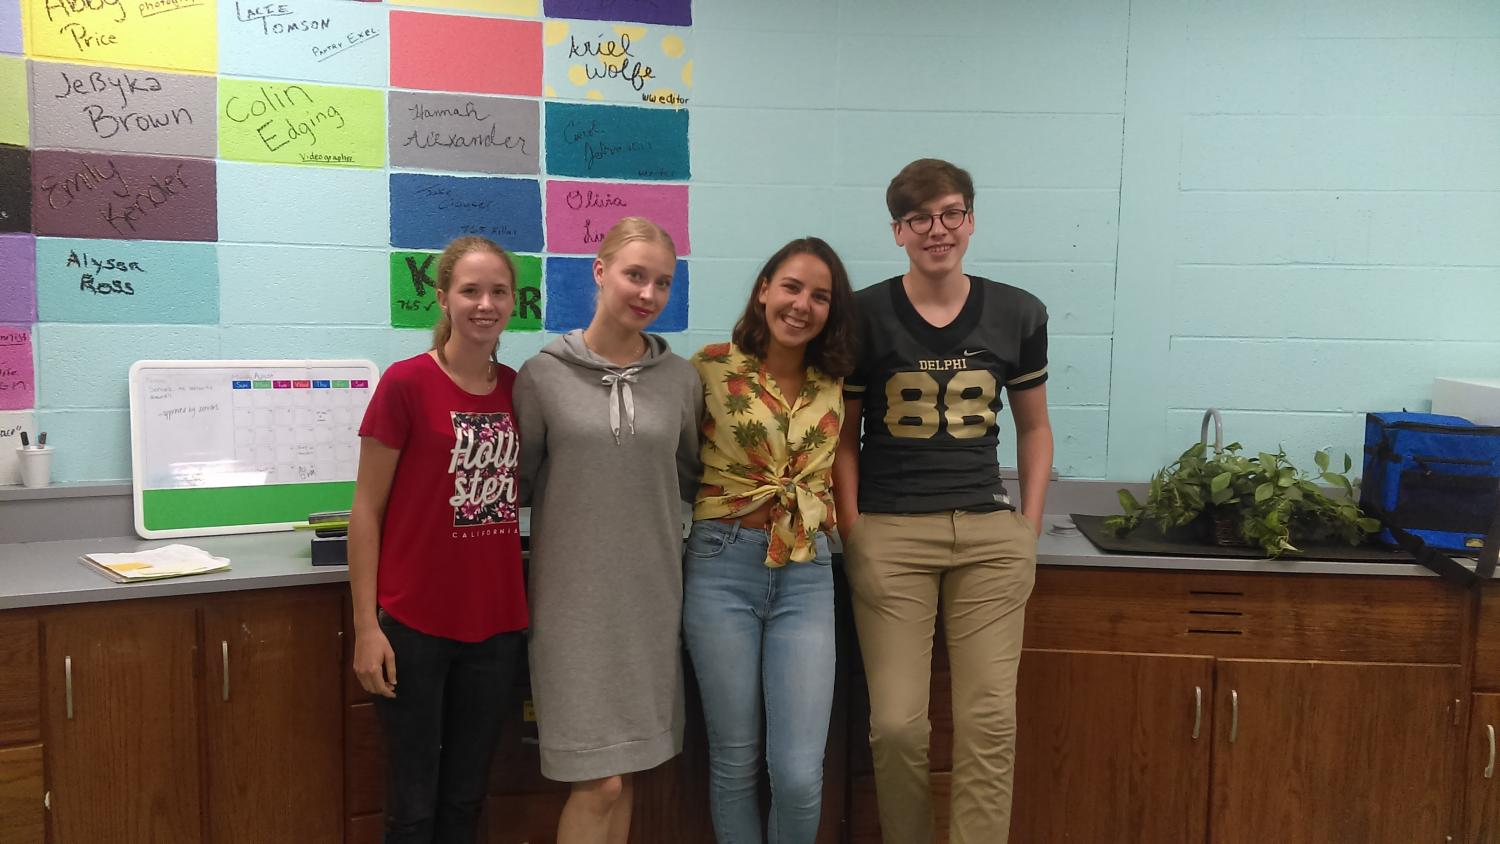 DCHS welcomes this year's foreign exchange students. From left: Brigitta Baranyai (Hungary), Elli Hyvaerinen (Finland), Manon Lhommel (Switzerland), and Joe Lammers (Germany).